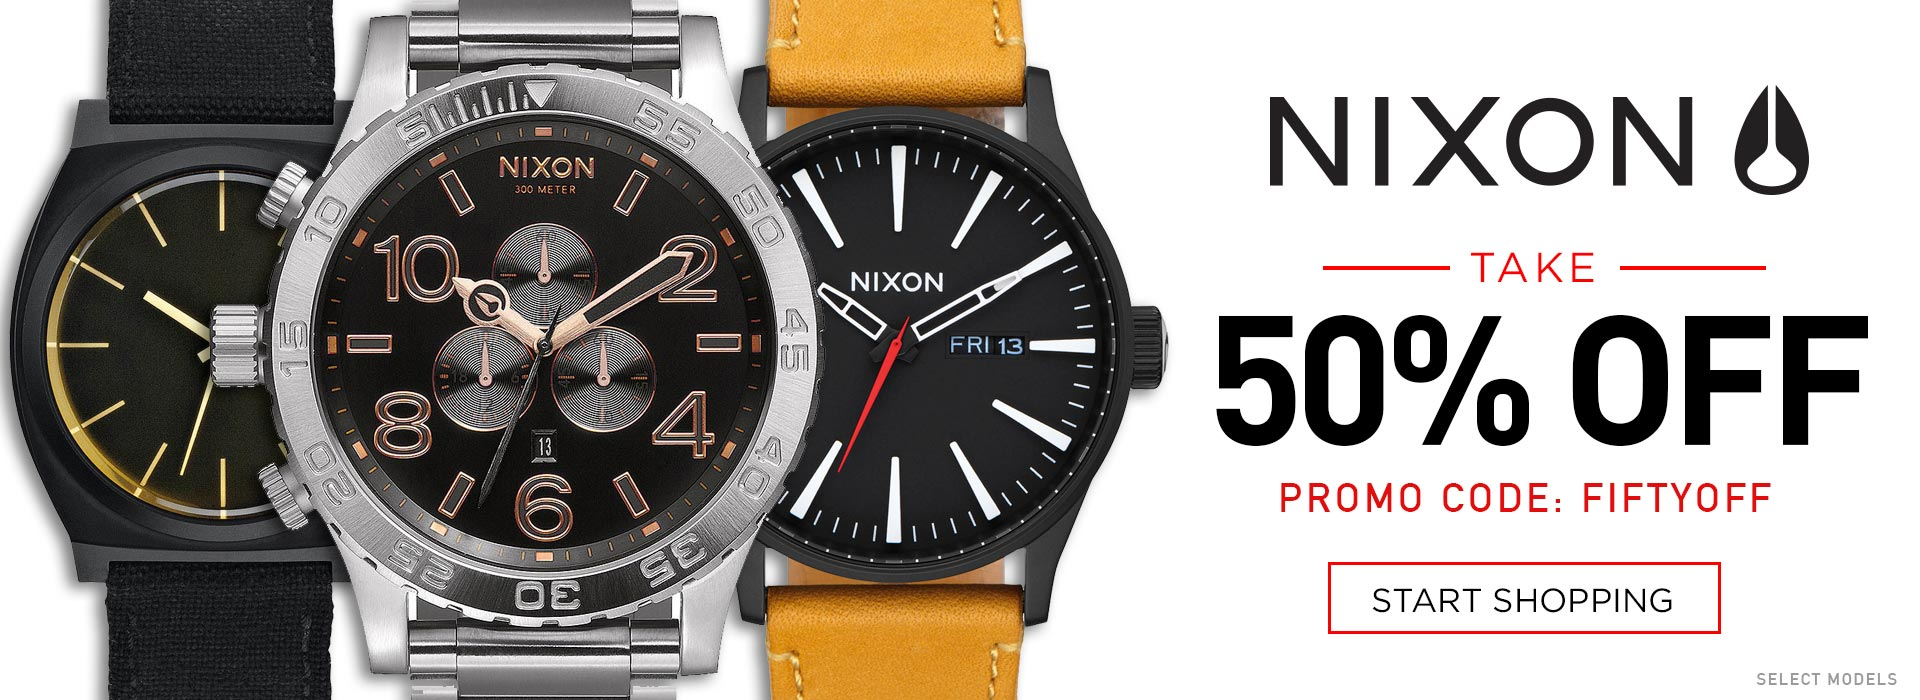 nixon watches on sale